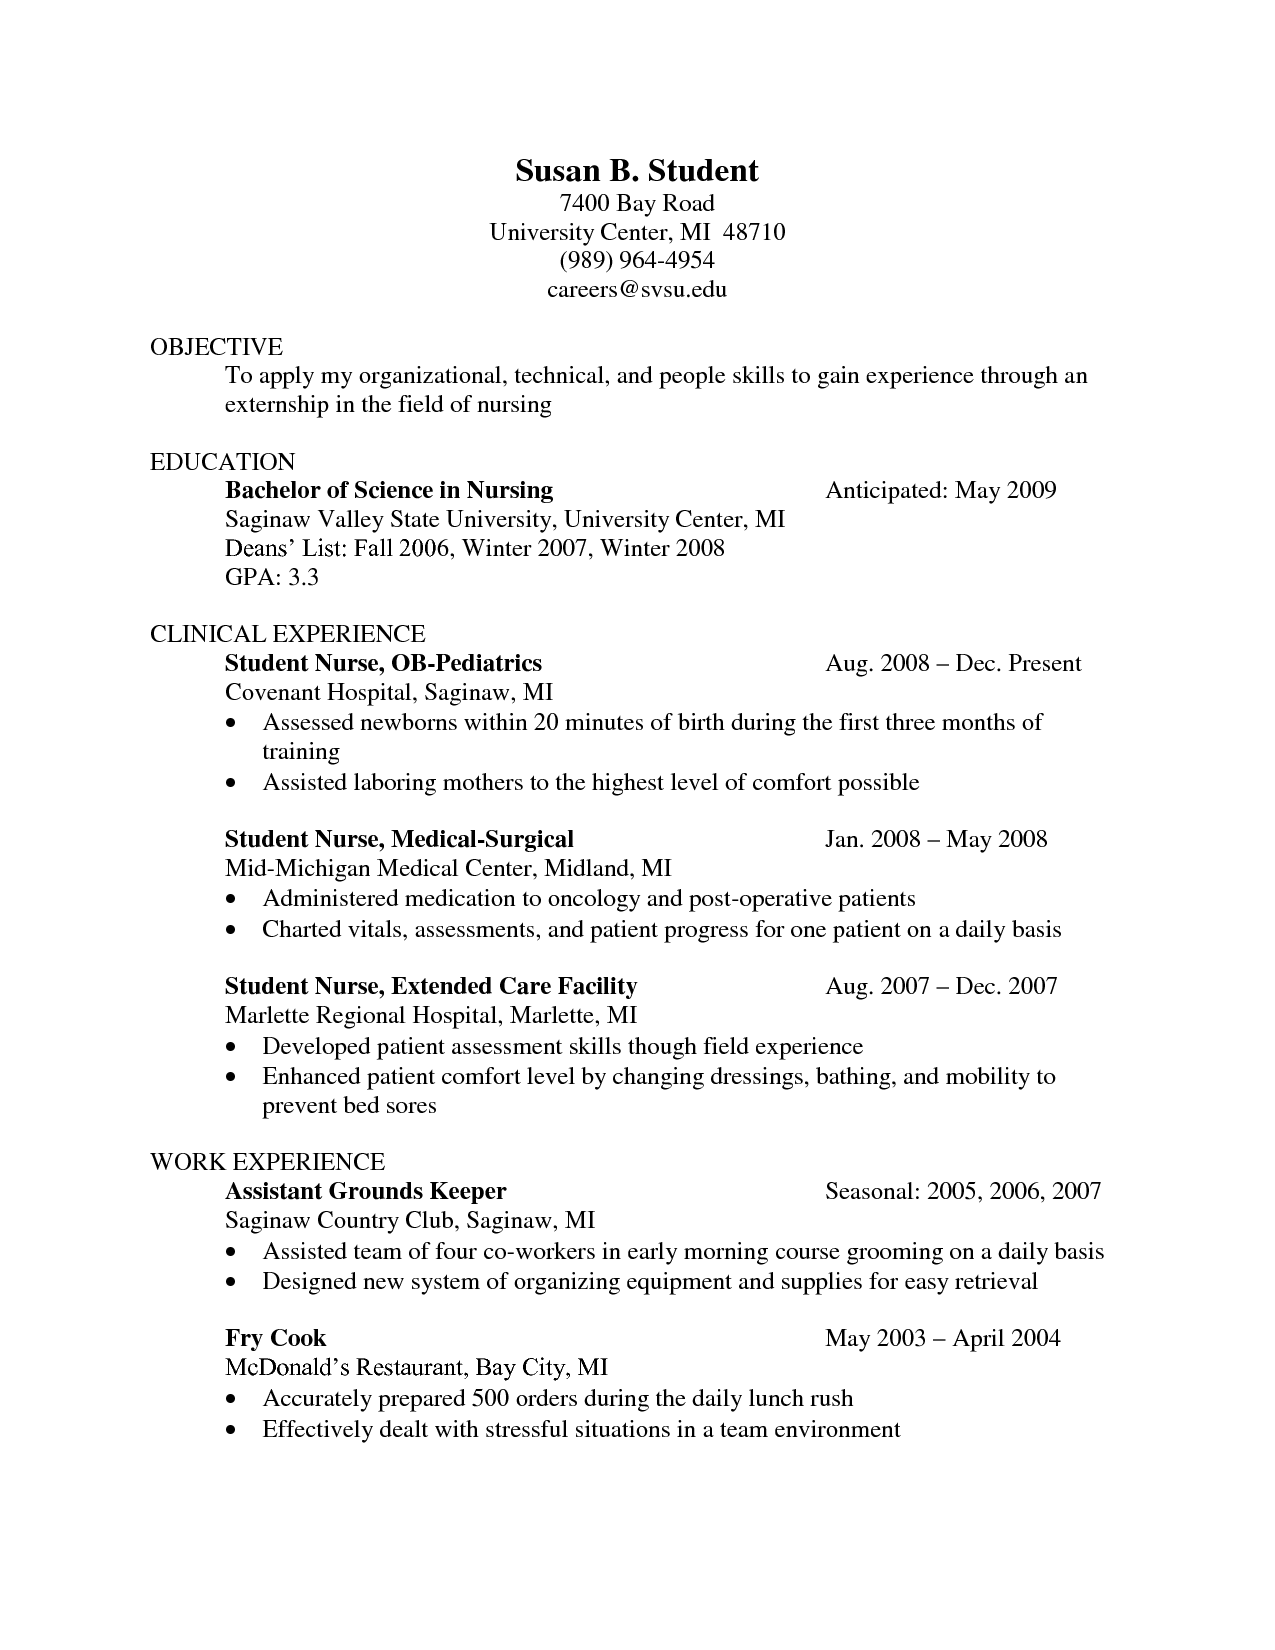 Oncology Nurse Resume Templates   Http://www.resumecareer.info/oncology  Student Nurse Resume